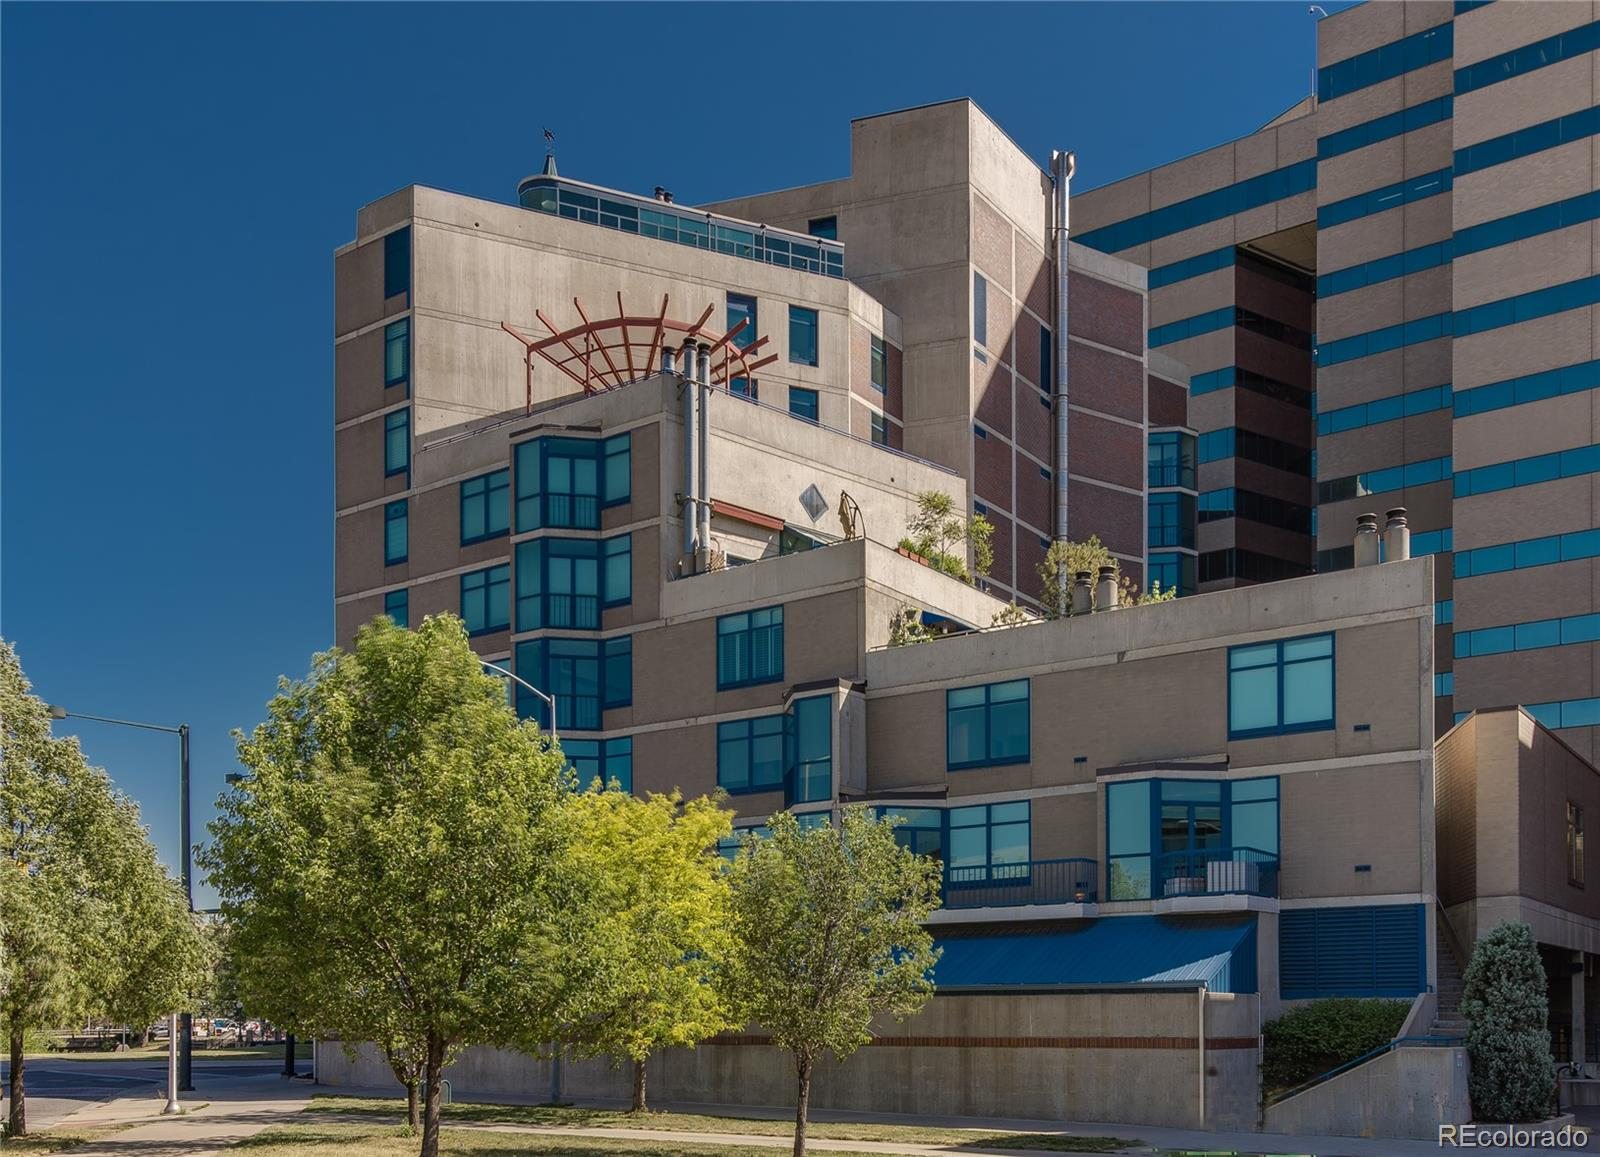 WOW, 2 stories, 2 bed, 3 baths, 2659 sq ft open-concept condo with incredible 360-degree views of the front range mountains and city lights, overlooking Cherry Creek Trail and Auraria Campus. Amazing location steps from Larimer Square, the Denver Center for Performing Arts, and more. Great natural light from the floor to ceiling windows with plantation shutters. Gorgeous custom built-ins, hardwood floors downstairs and new top-quality carpet upstairs with huge open office, a laundry room sized for a full-sized washer and dryer and a wet bar with a refrigerator in the den. Plenty of storage space with large closets and a walk-in pantry. There is elevator access to both floors (common area) of the unit and the building's large common area terrace where you can grill and entertain is literally across the hall! The unique architecture cannot be matched anywhere in Denver. Comes with deeded parking spaces in the secure garage, where there are also 2 dedicated storage units. For views alone, this one deserves attention.